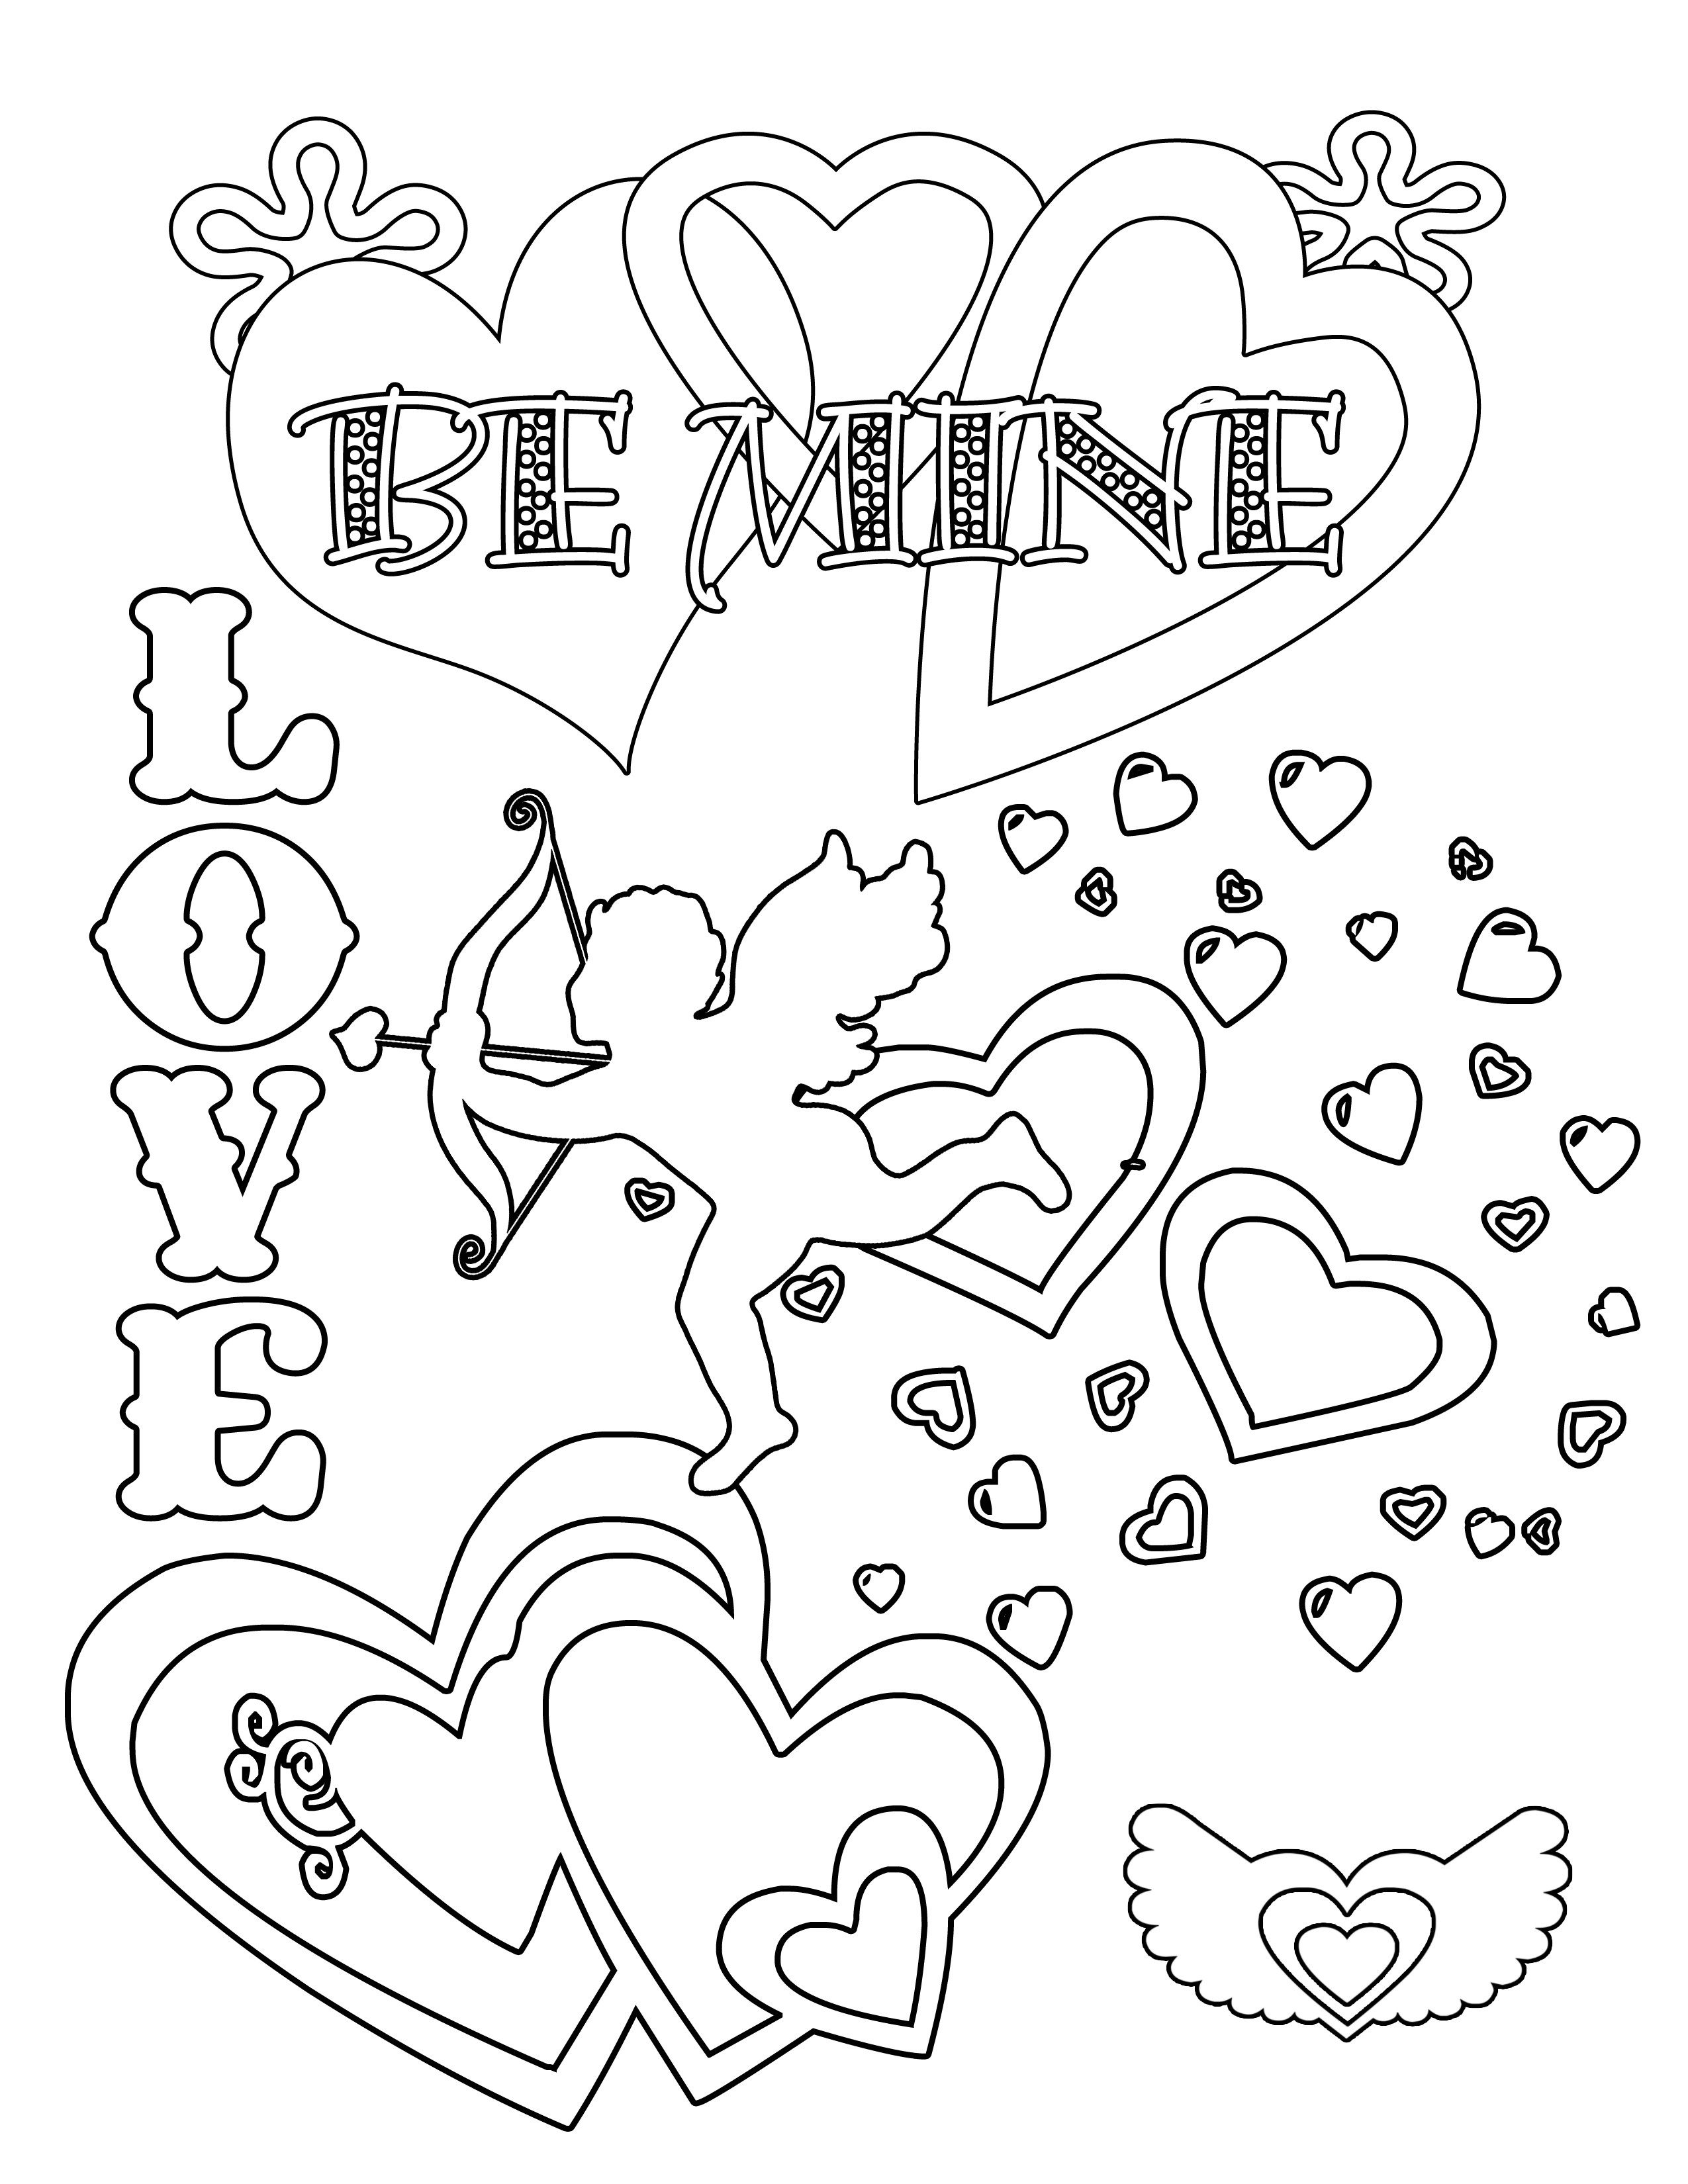 Valentine Coloring Pages For Kids Printable  Valentine Coloring Pages Best Coloring Pages For Kids